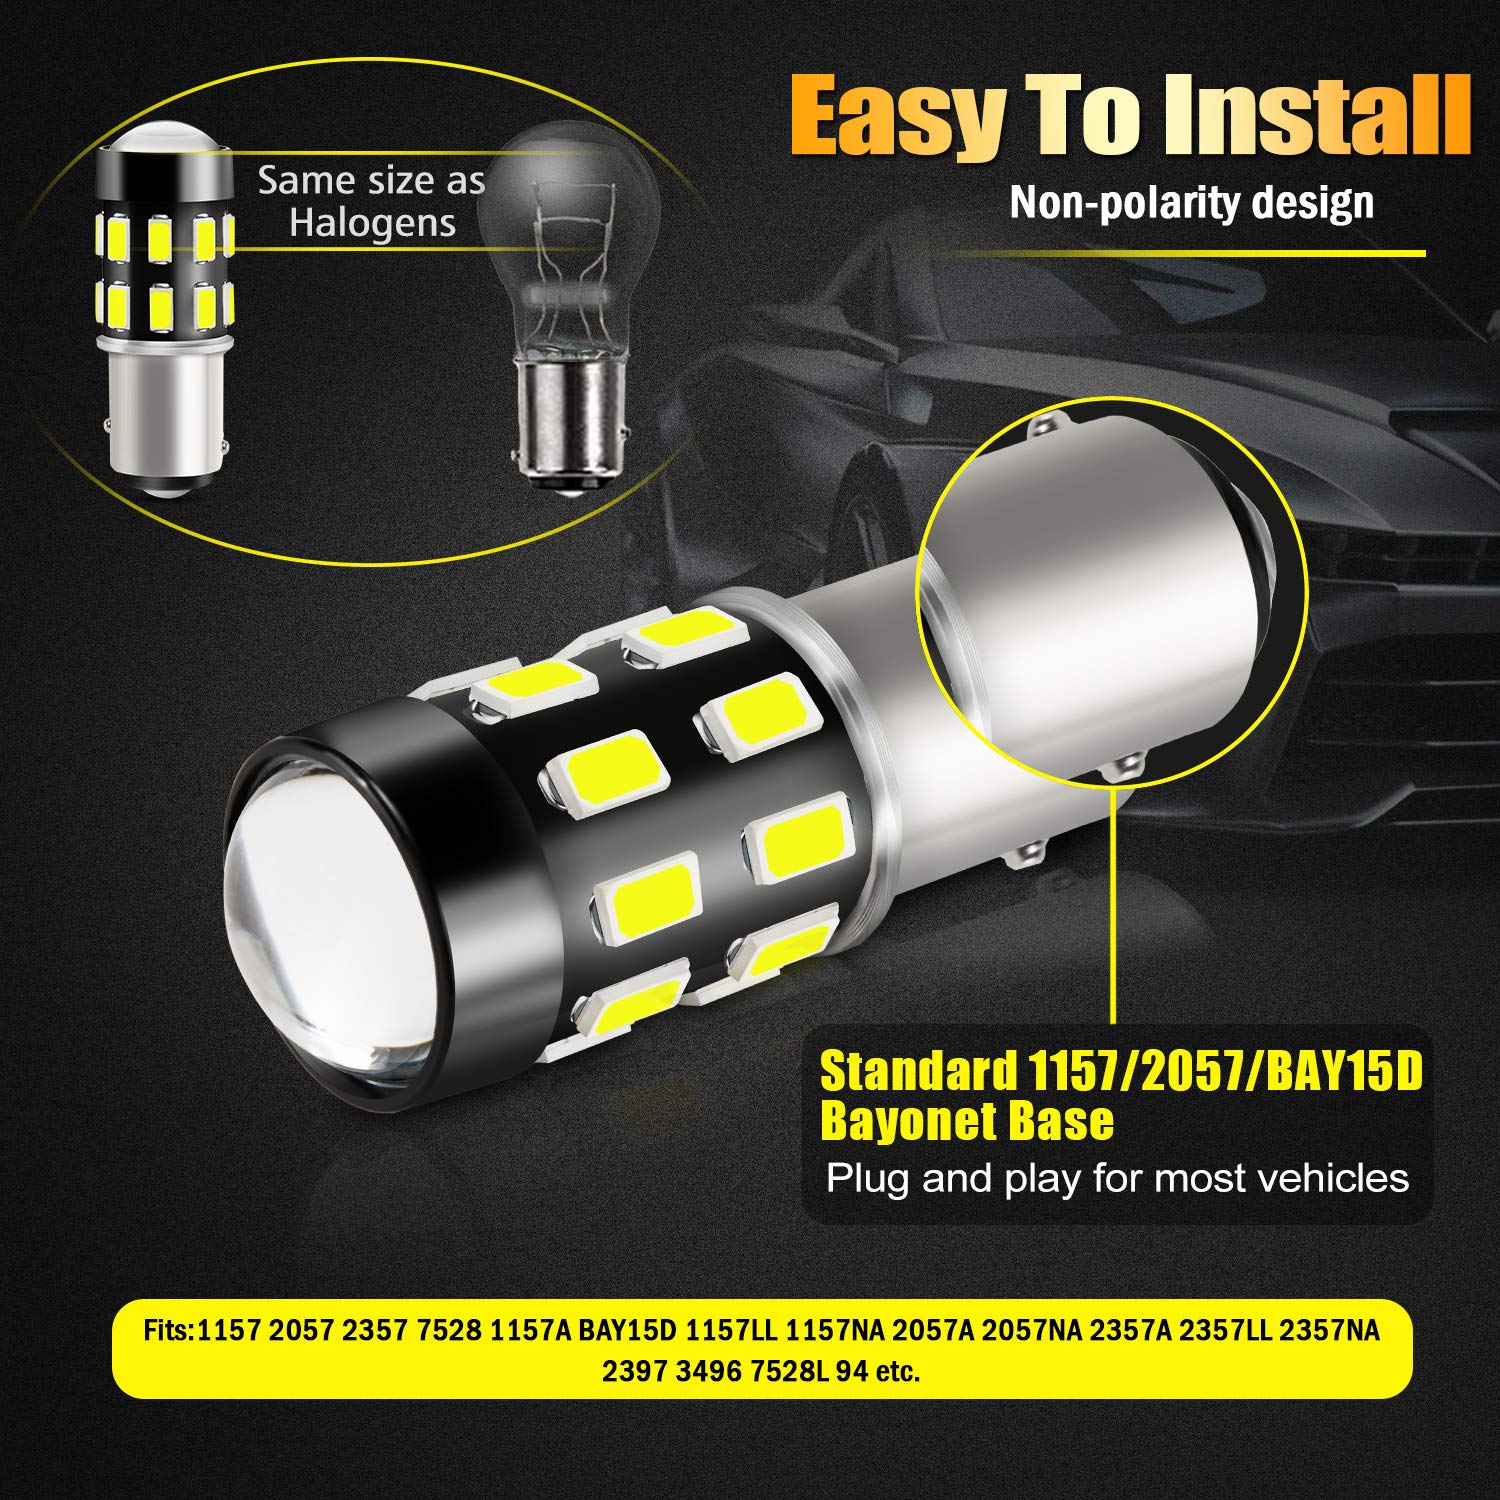 1156 LED Bulbs Pack of 2 LIGHSTA 1200 Lumens Super Bright 5630 Chipsets 1073 1003 1141 7506 BA15S LED Bulbs with Projector for Backup Reverse Lights Tail Brake DRL Parking Lights Xenon White